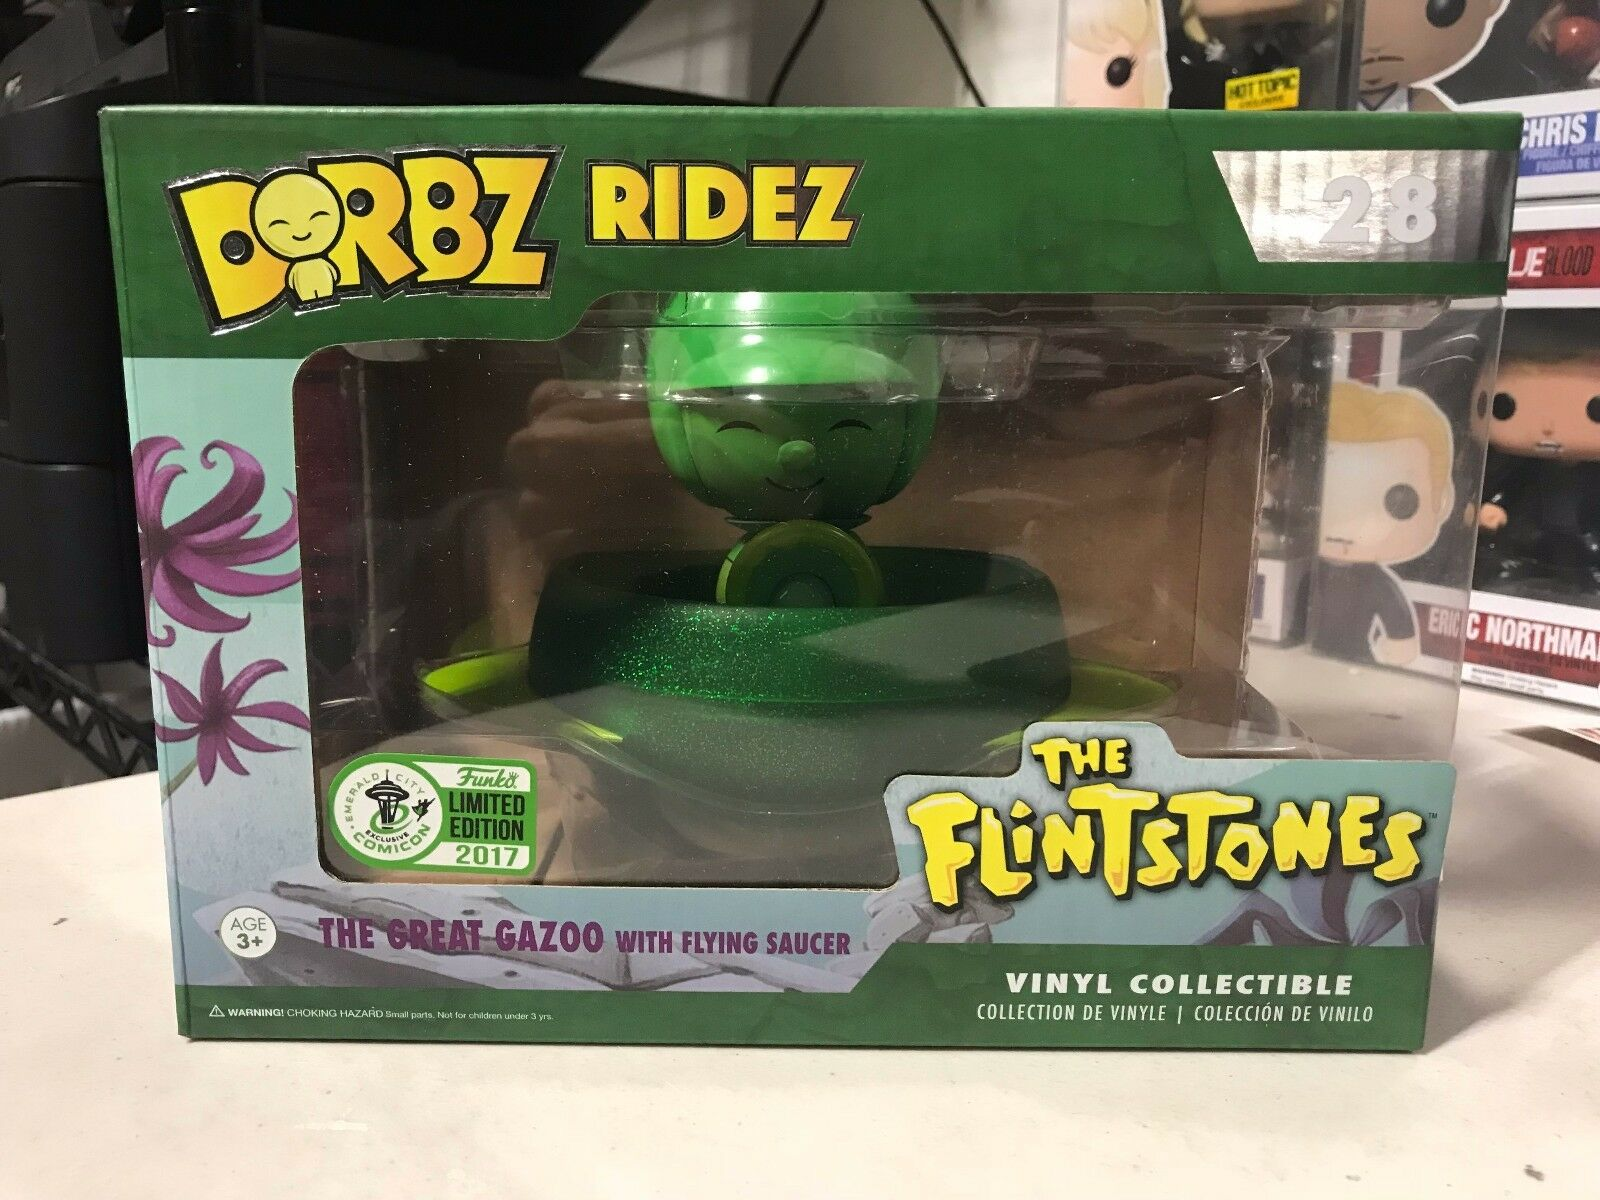 FUNKO DORBZ RIDEZ THE GREAT GAZOO FLINTSTONES 2017 ECCC COMIC CON EXCLUSIVE